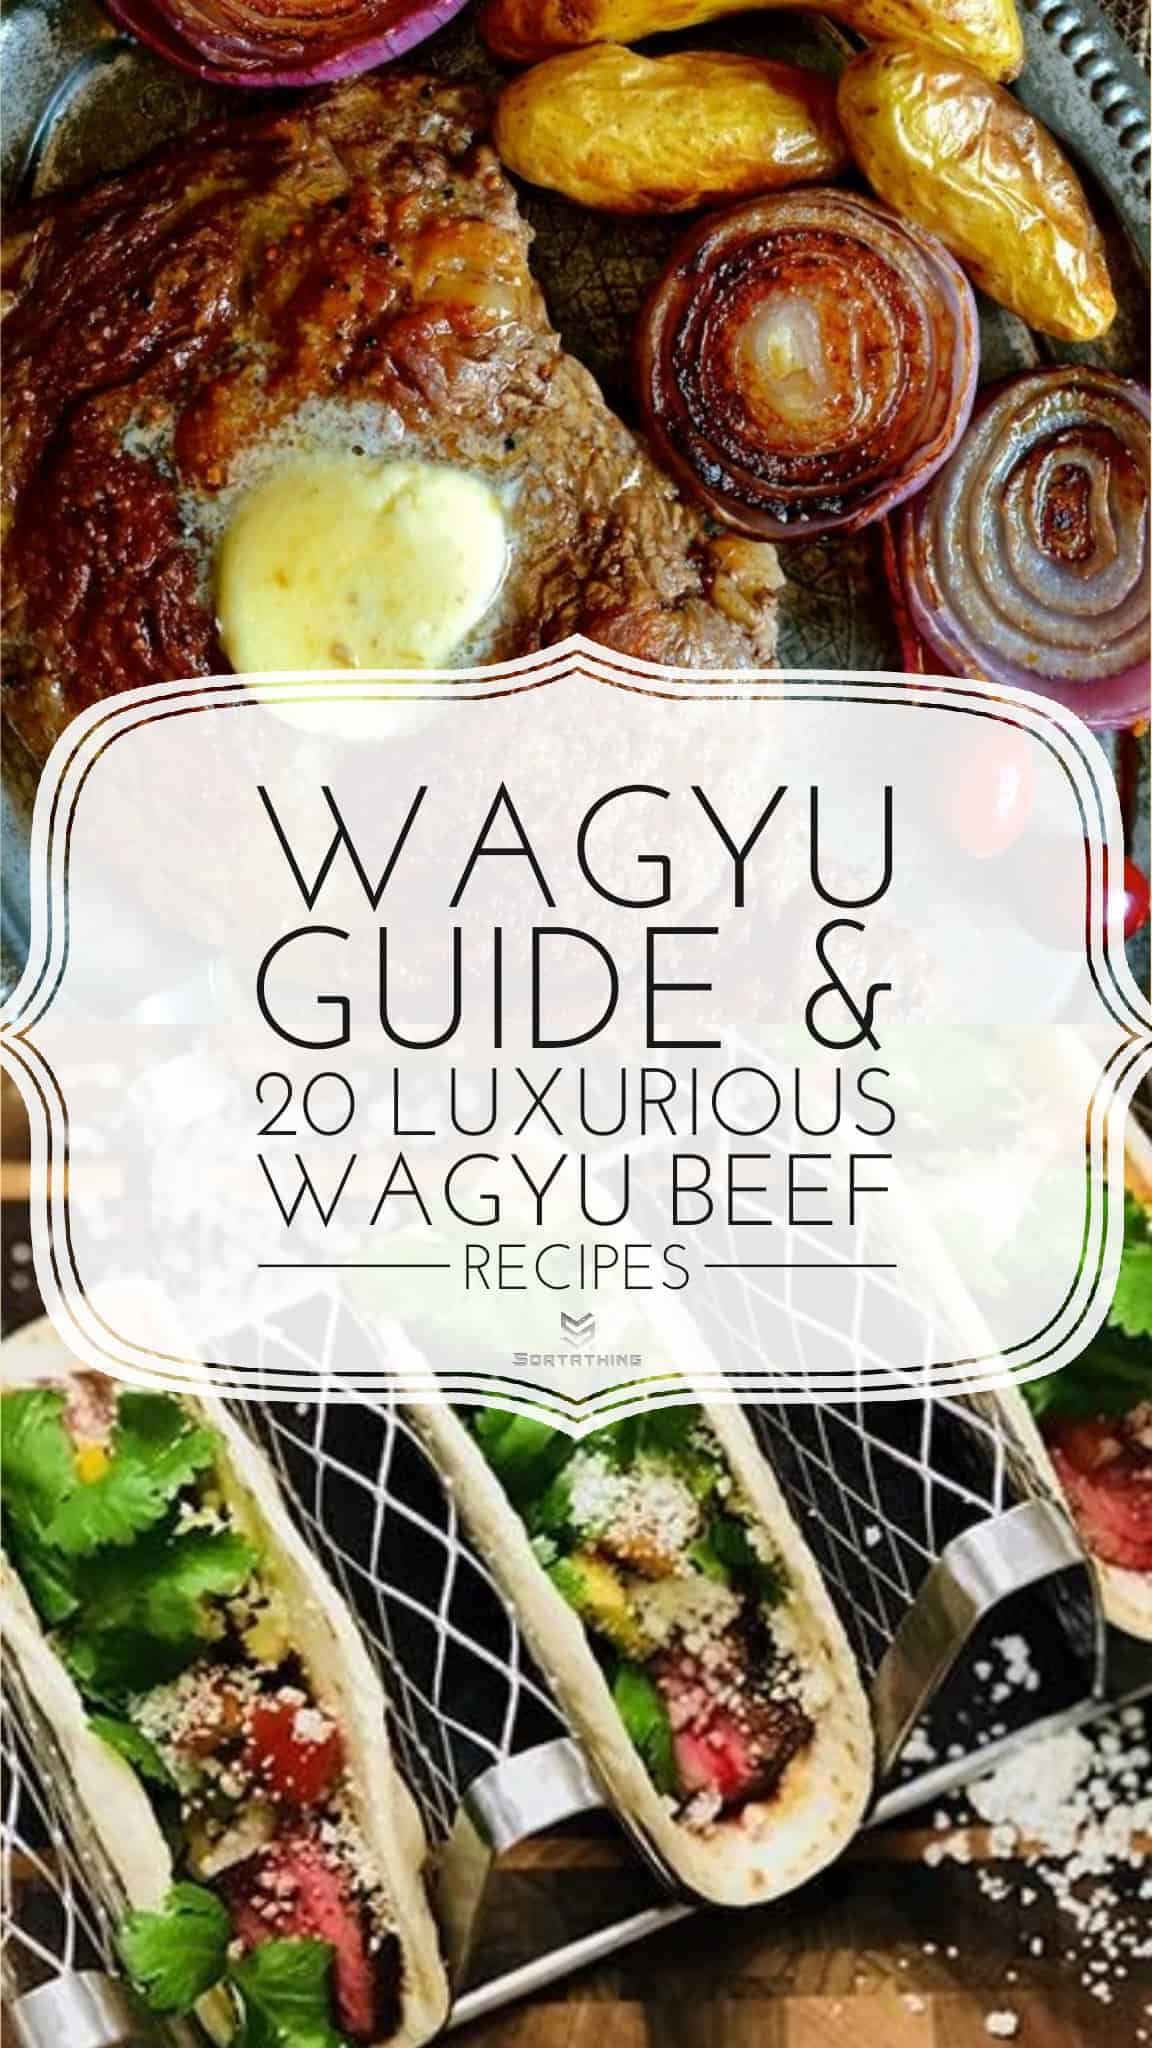 Wagyu Beef Ribeye with Truffle Butter and Wagyu Beef Tequila Tacos